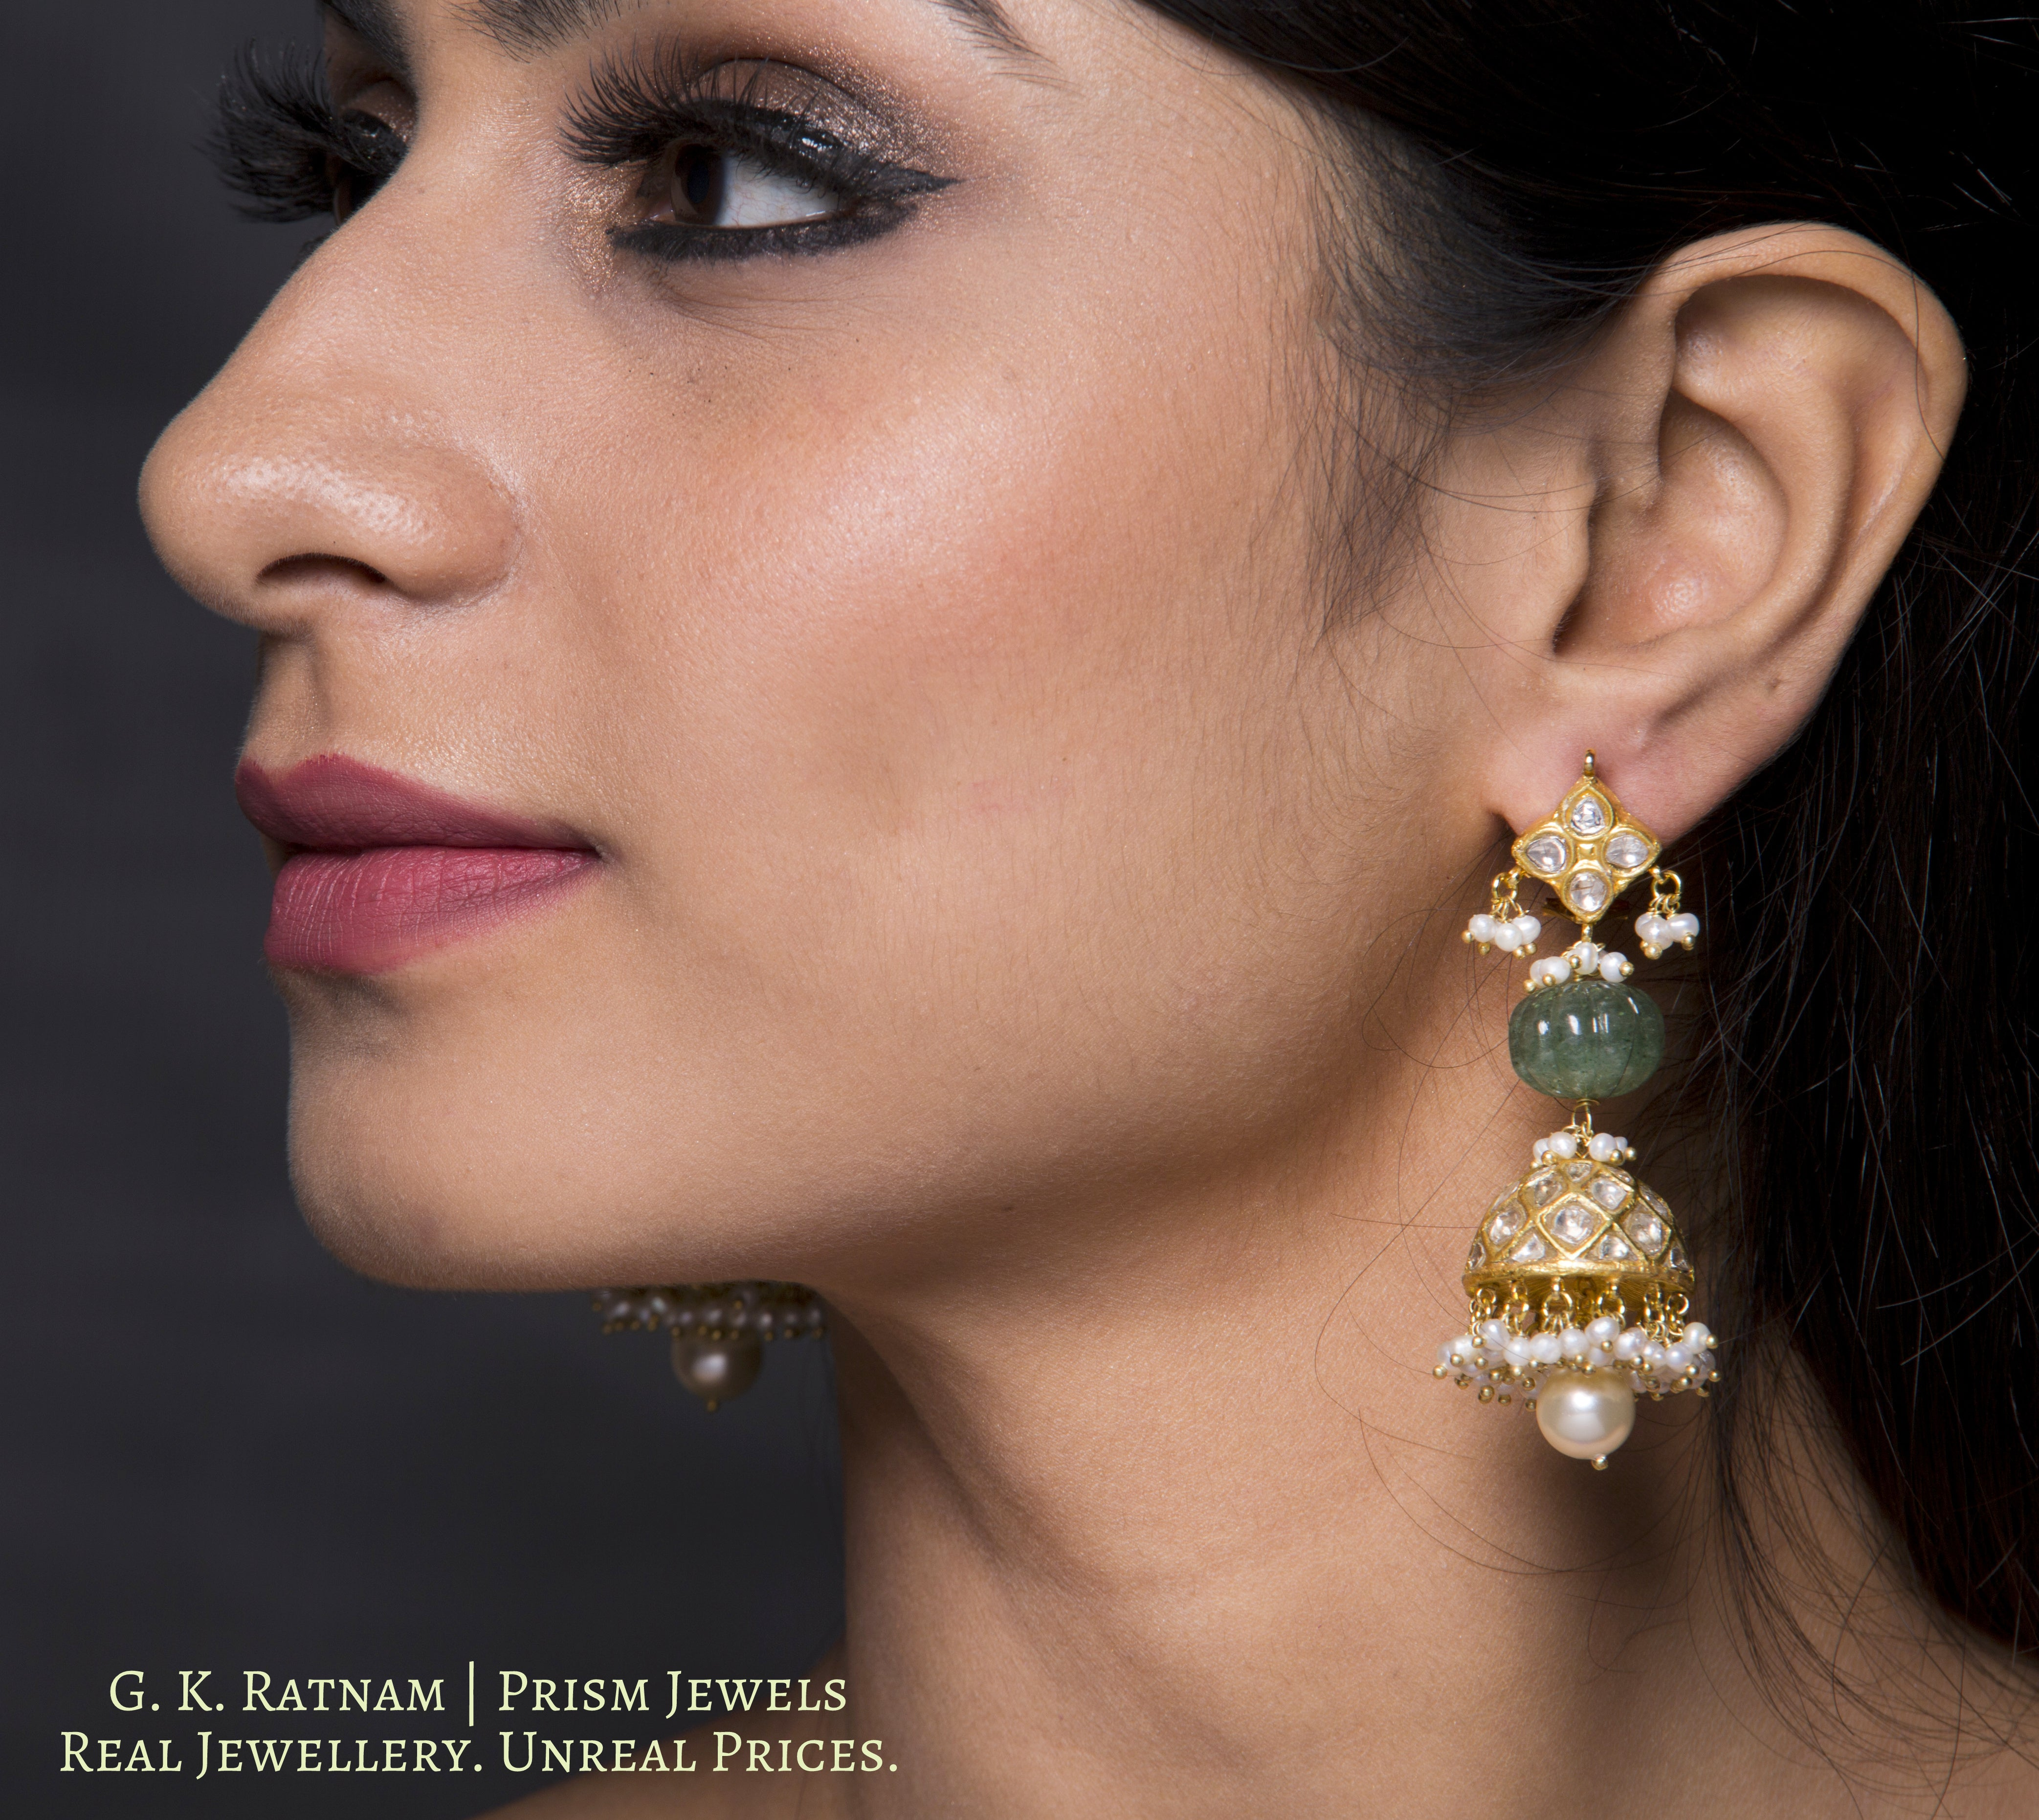 23k Gold and Diamond Polki Jhumki Earring Pair with Aventurine Quartz melons and natural hyderabadi pearls - gold diamond polki kundan meena jadau jewellery